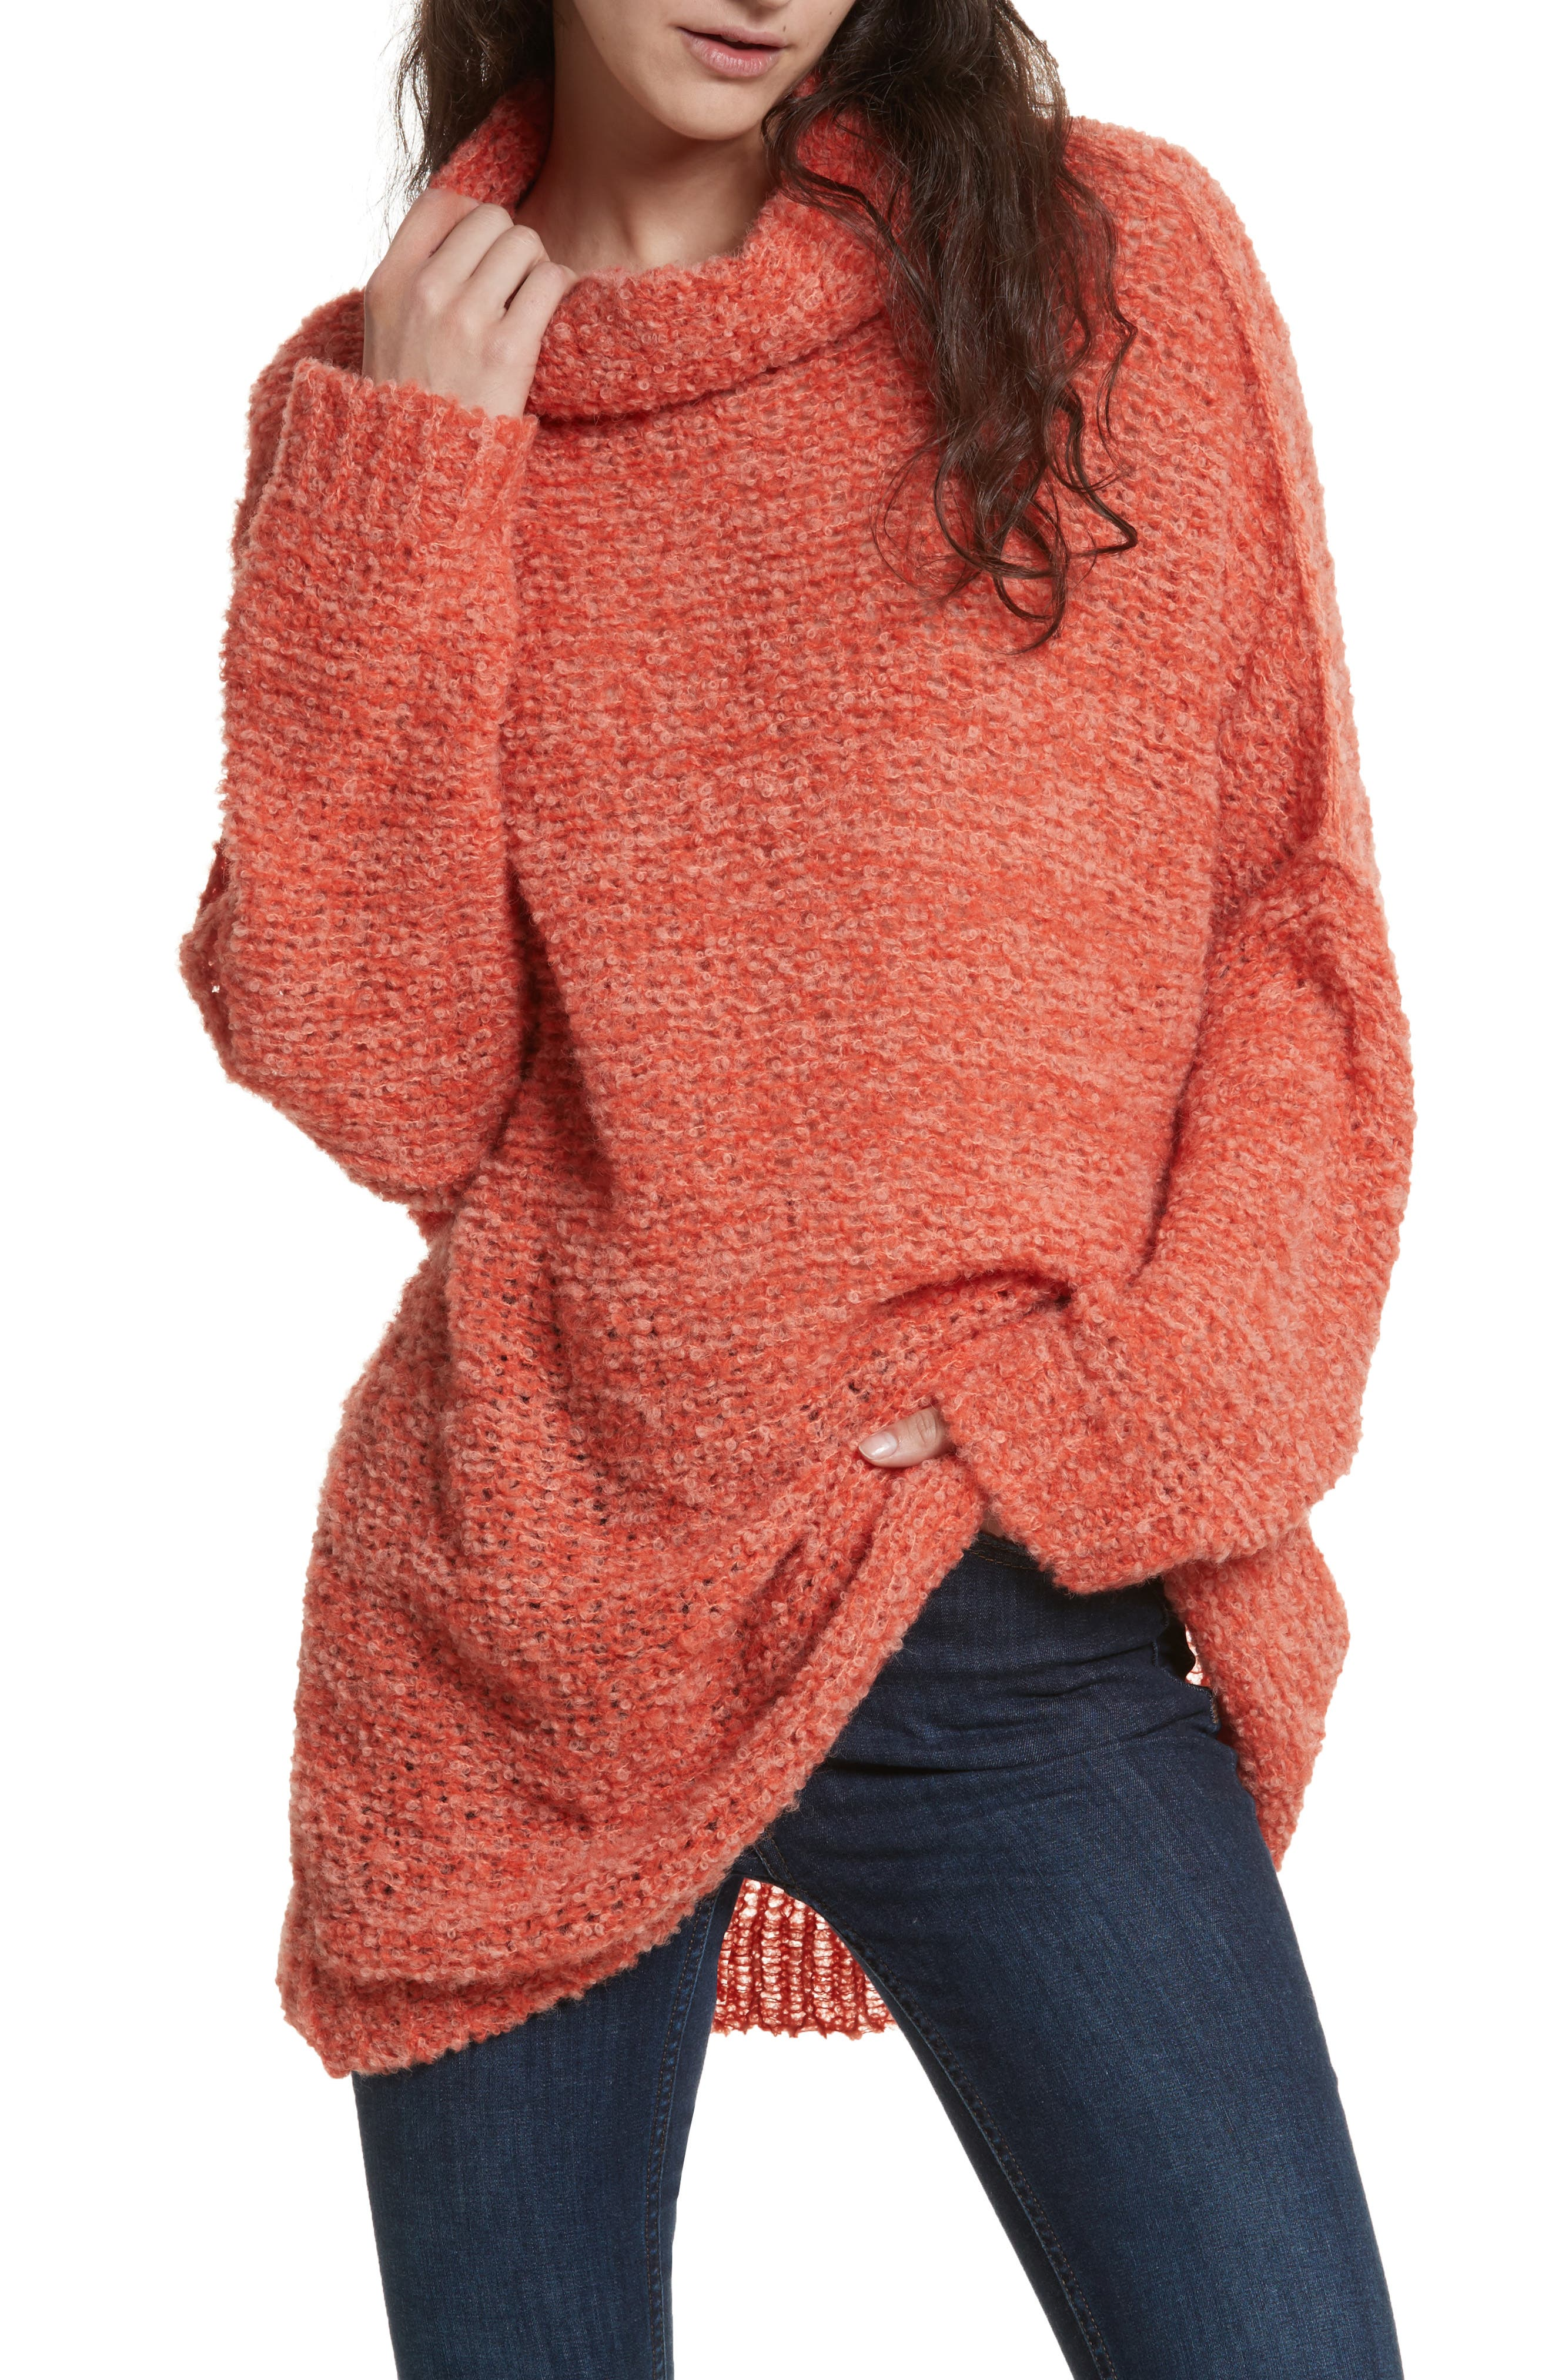 'She's All That' Knit Turtleneck Sweater,                         Main,                         color,